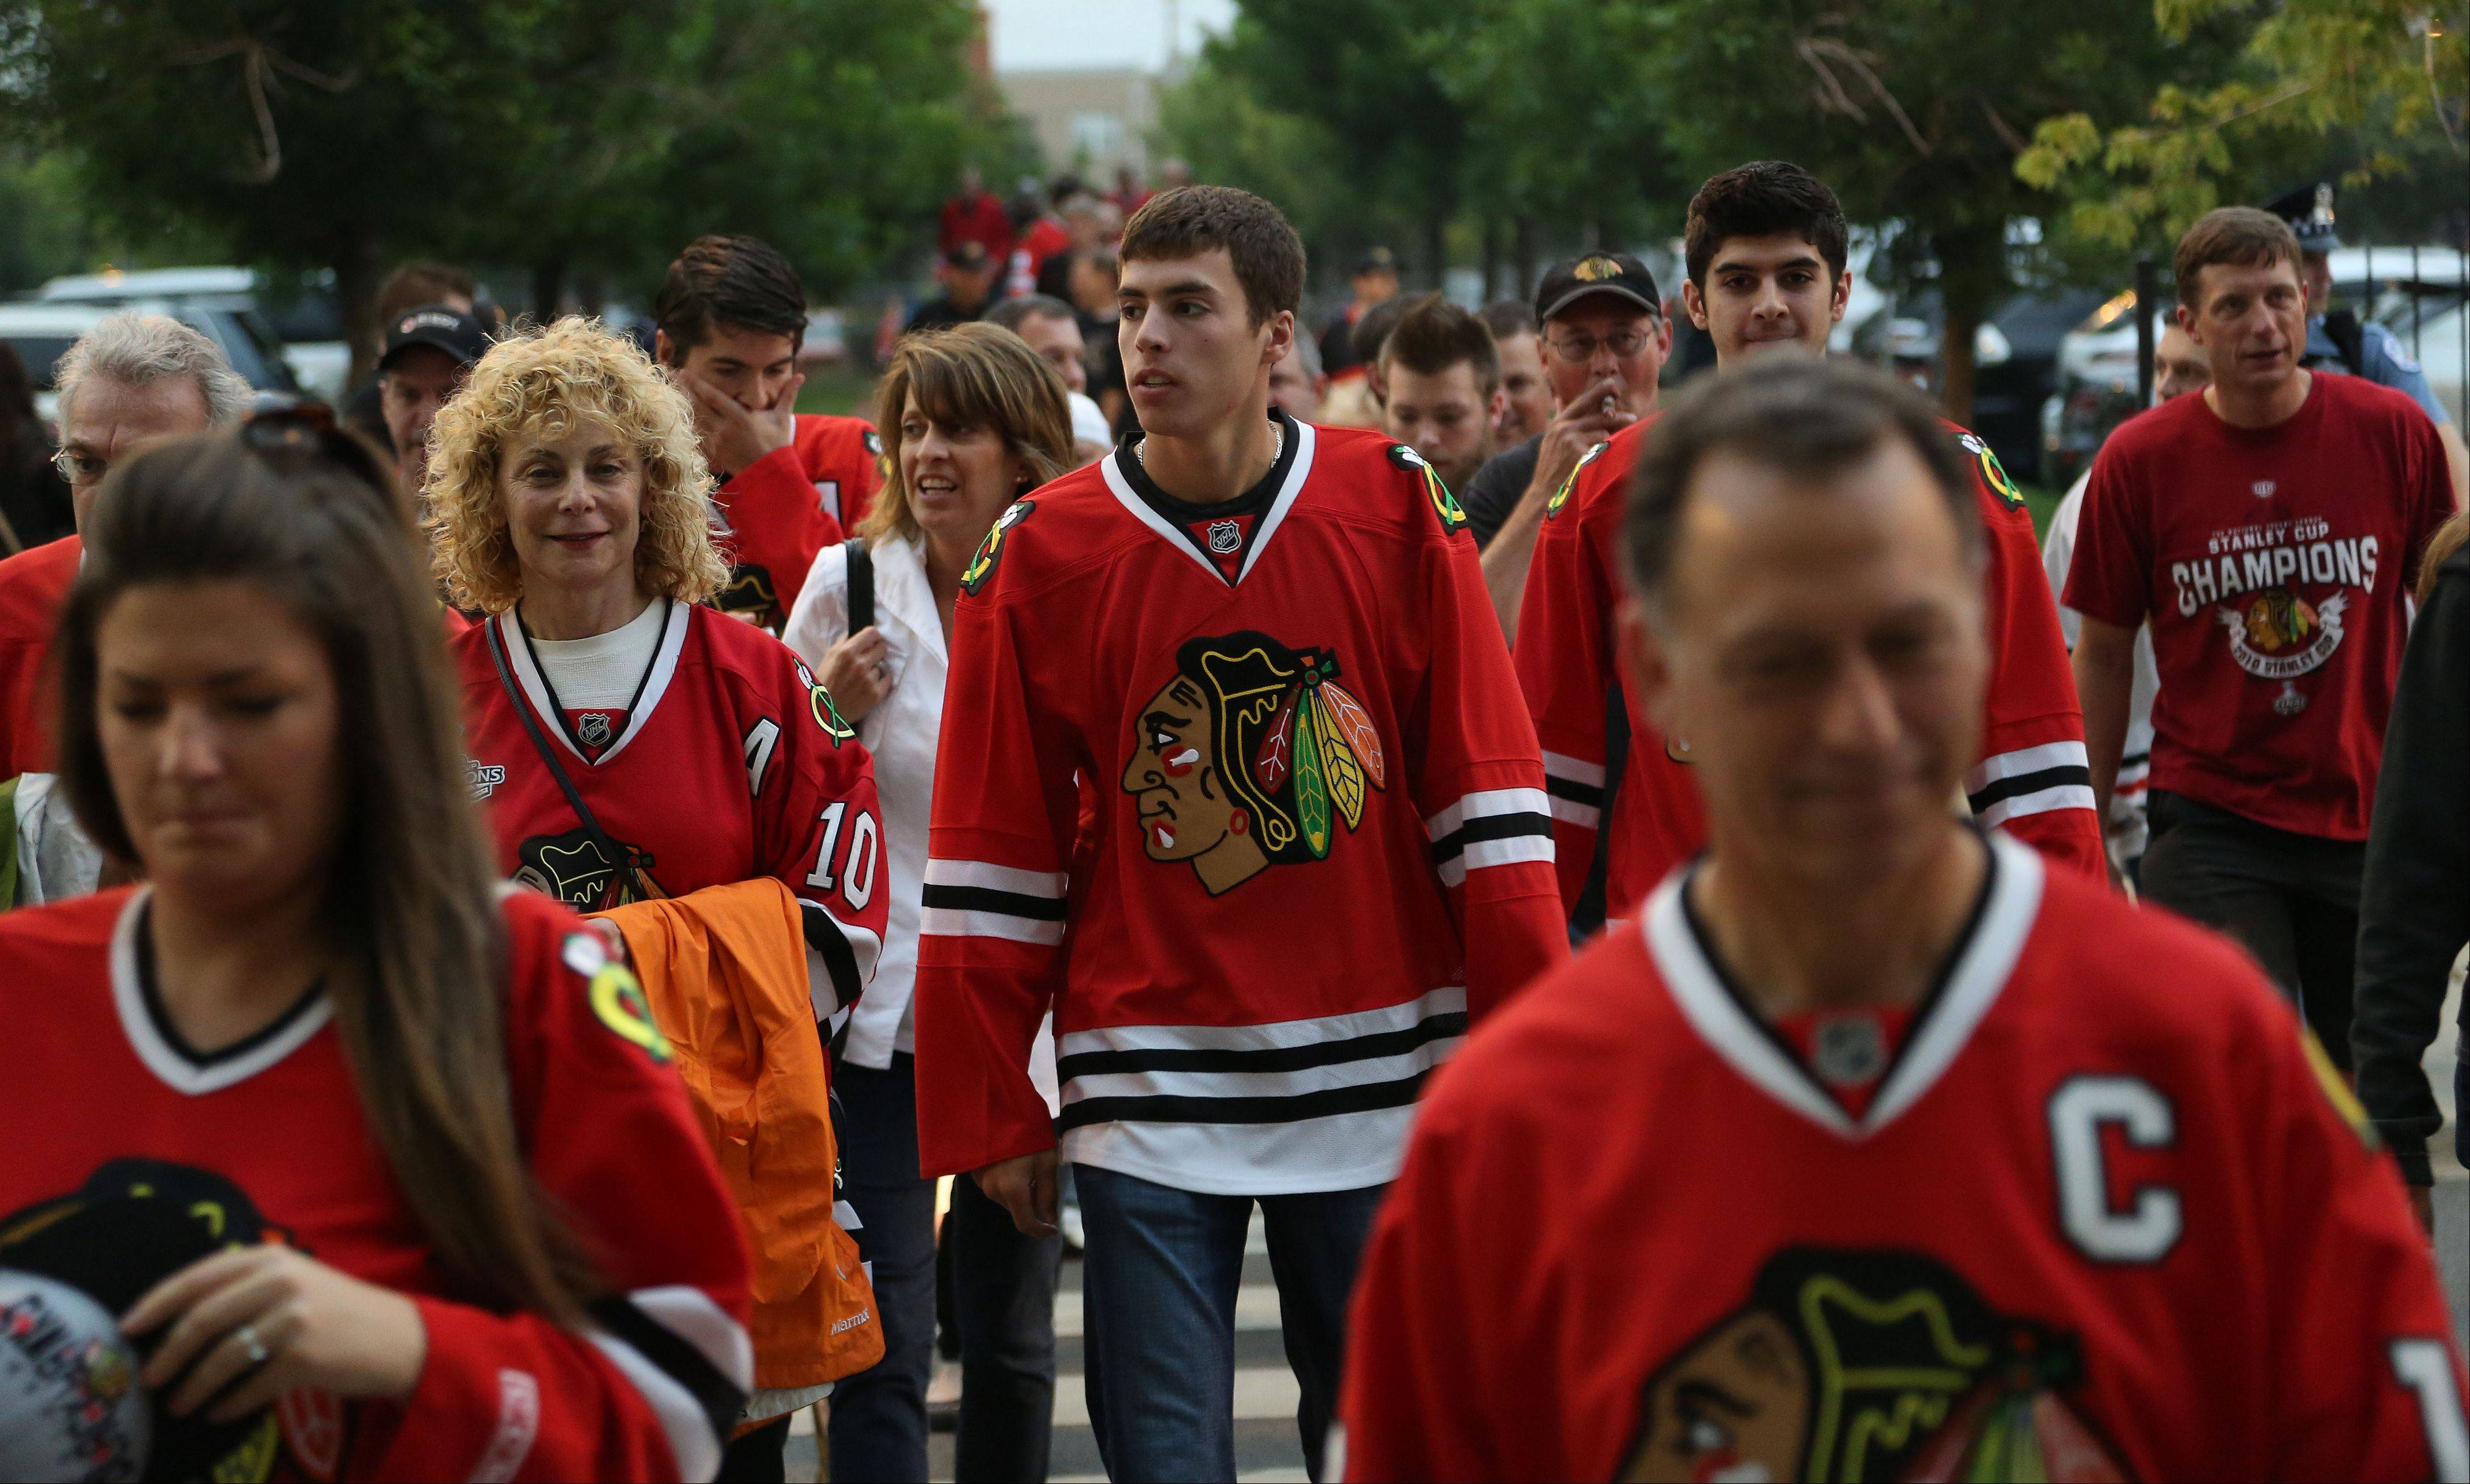 Steve Lundy/slundy@dailyherald.com Blackhawks fans are all red as they make their way into the United Center before Wednesday night's game one of the Stanley Cup Finals against the Boston Bruins.